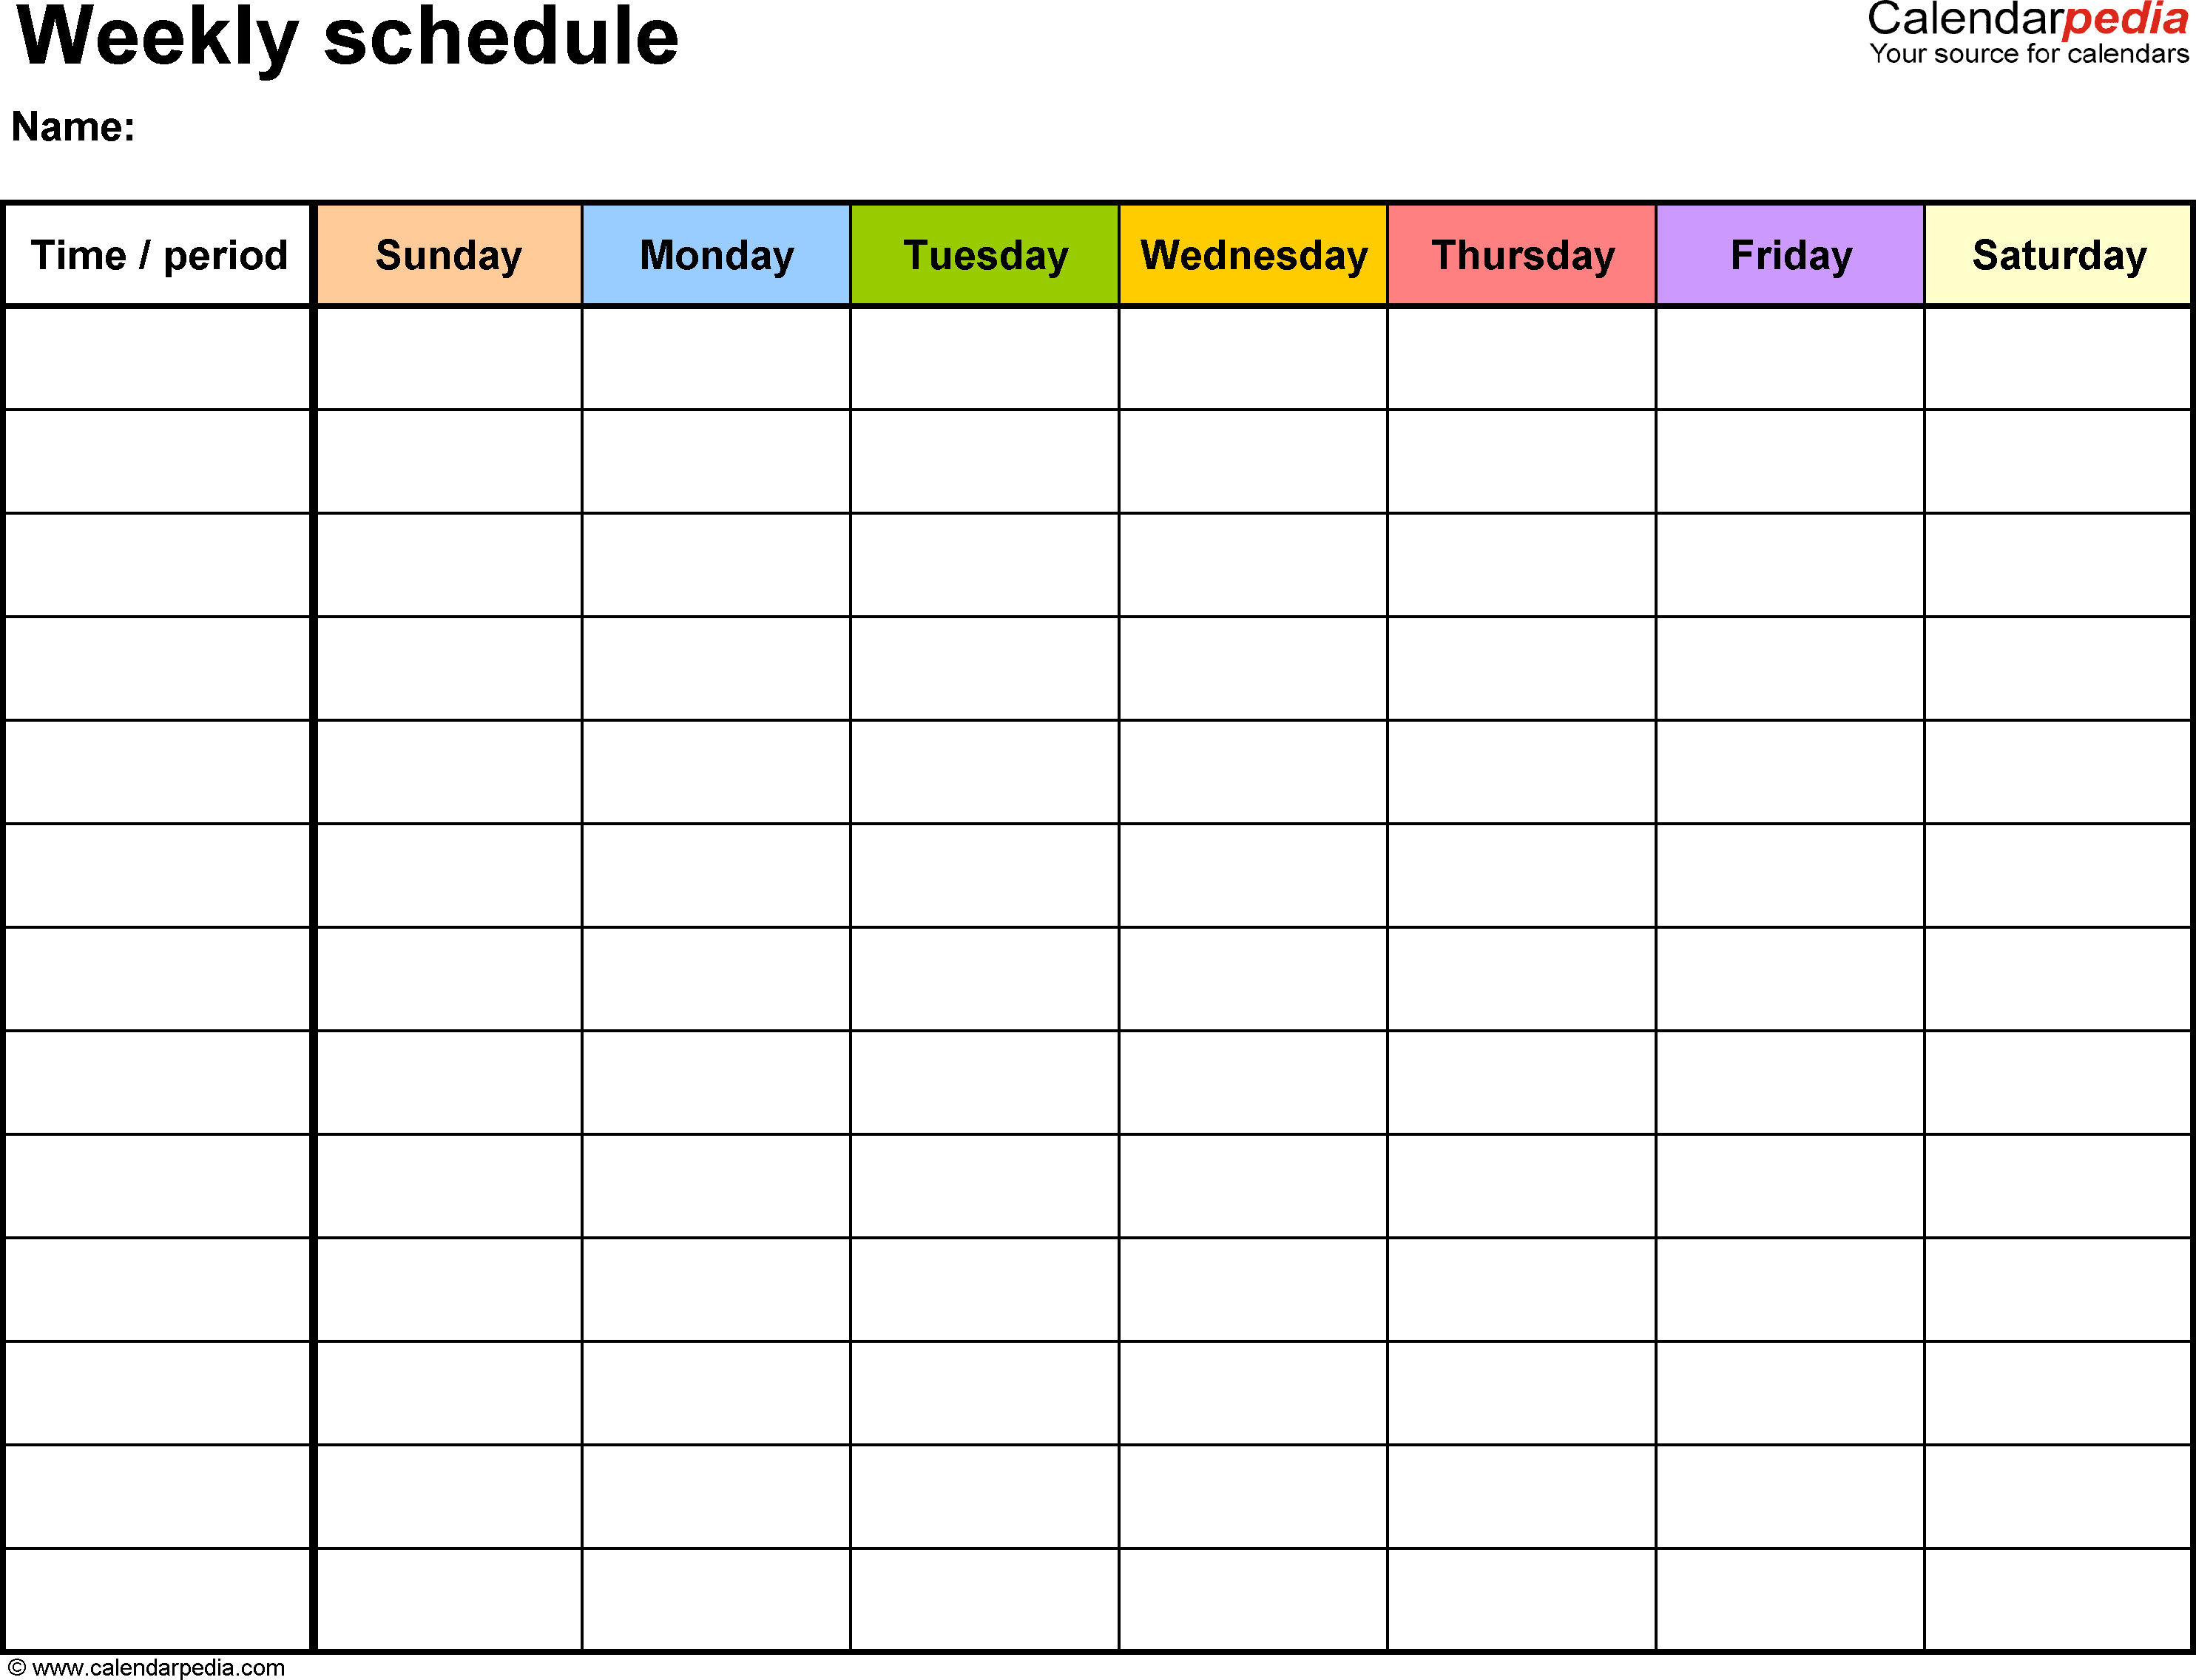 Free Weekly Schedule Templates For Excel - 18 Templates regarding Calendar Planner Template Excel